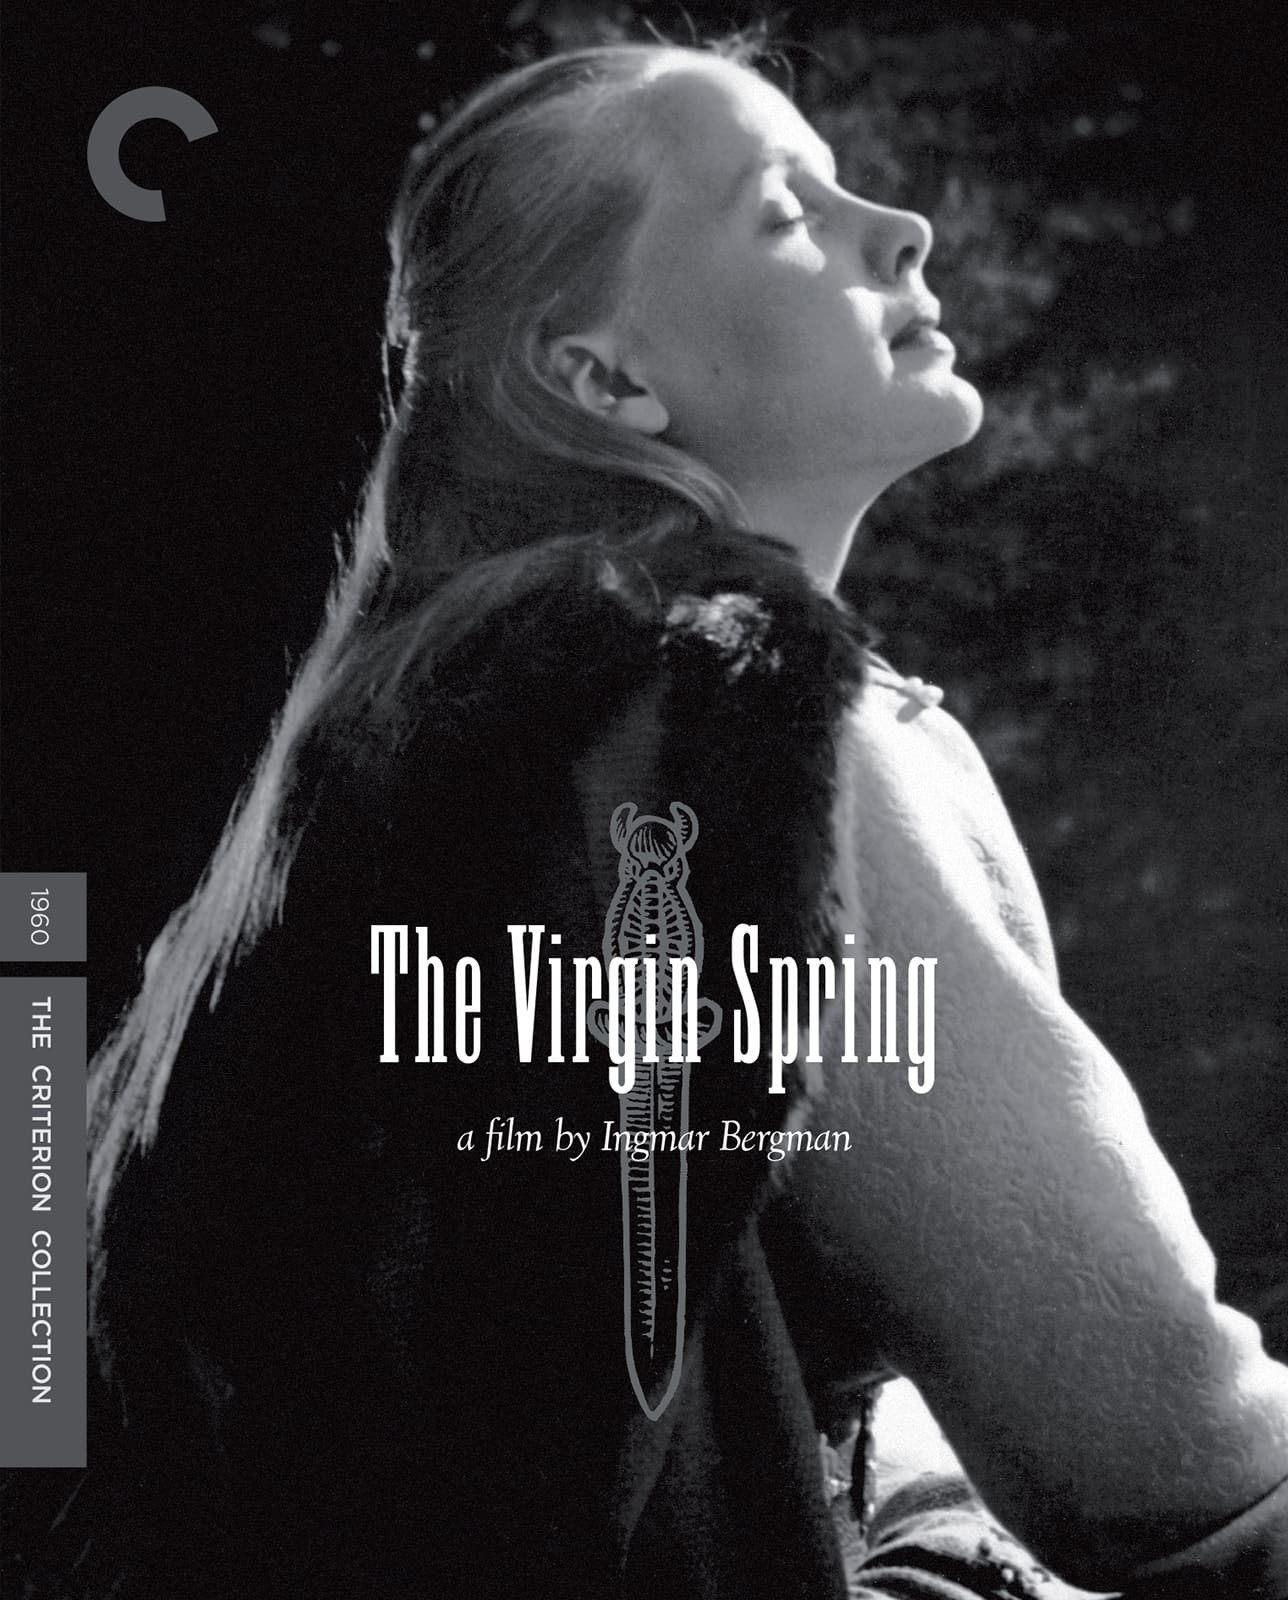 The Virgin Spring (The Criterion Collection)(1960) Blu-ray